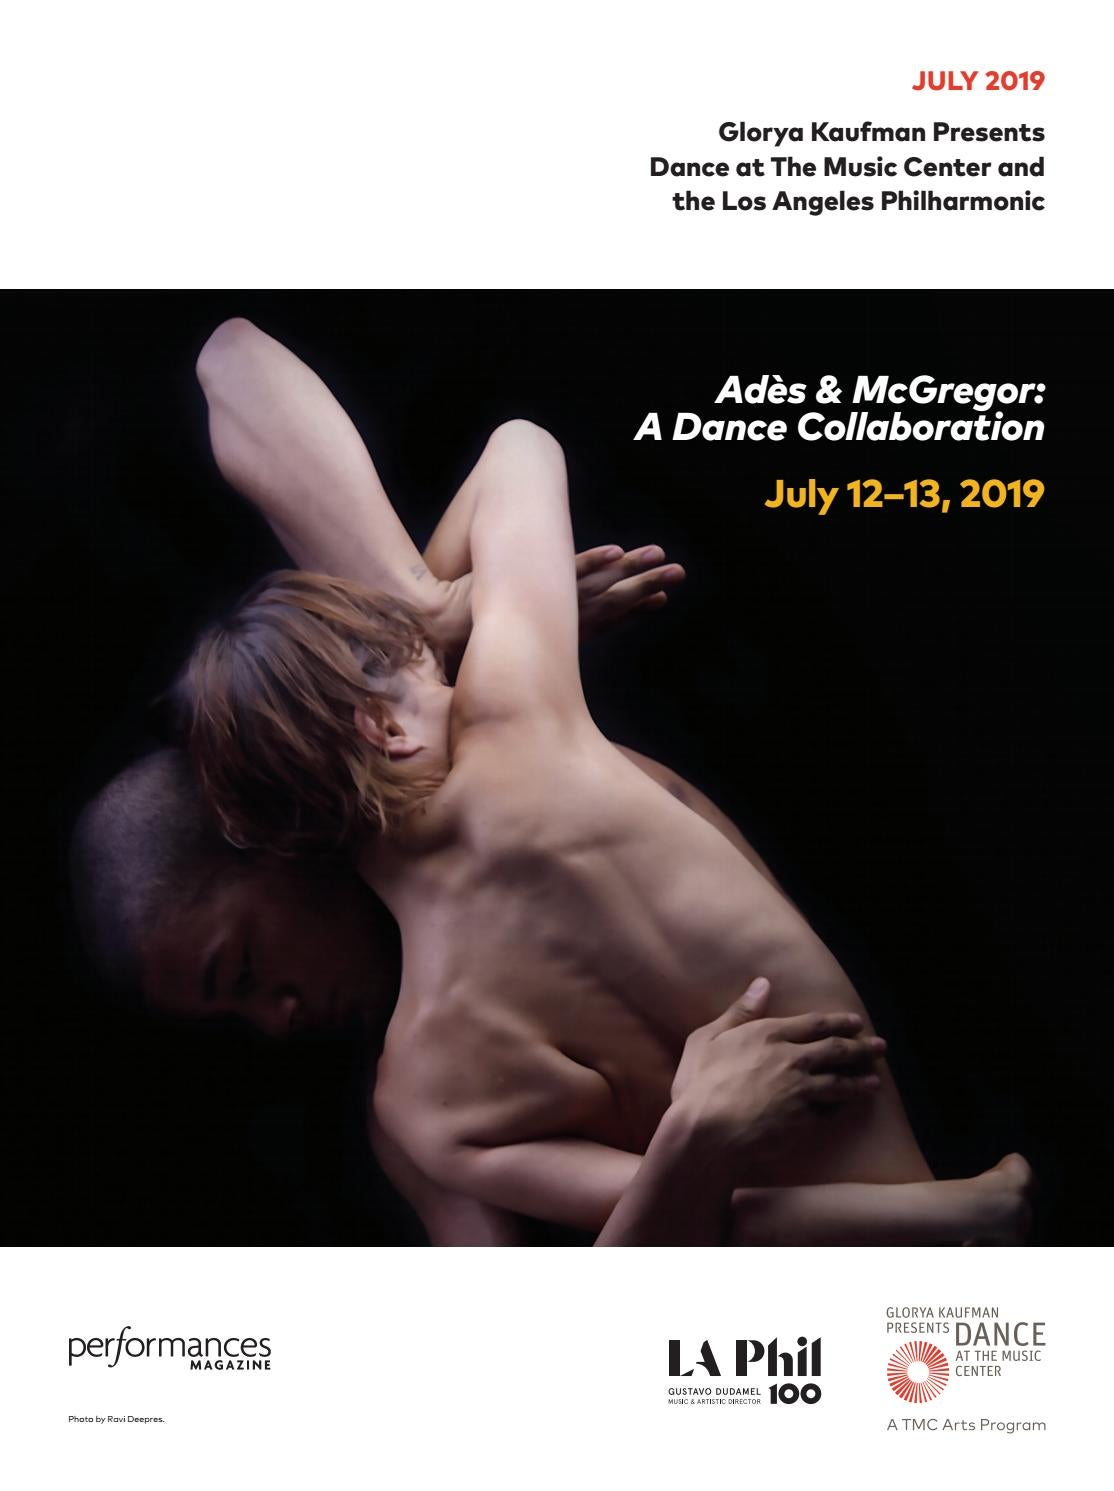 Adès & McGregor: A Dance Collaboration by The Music Center